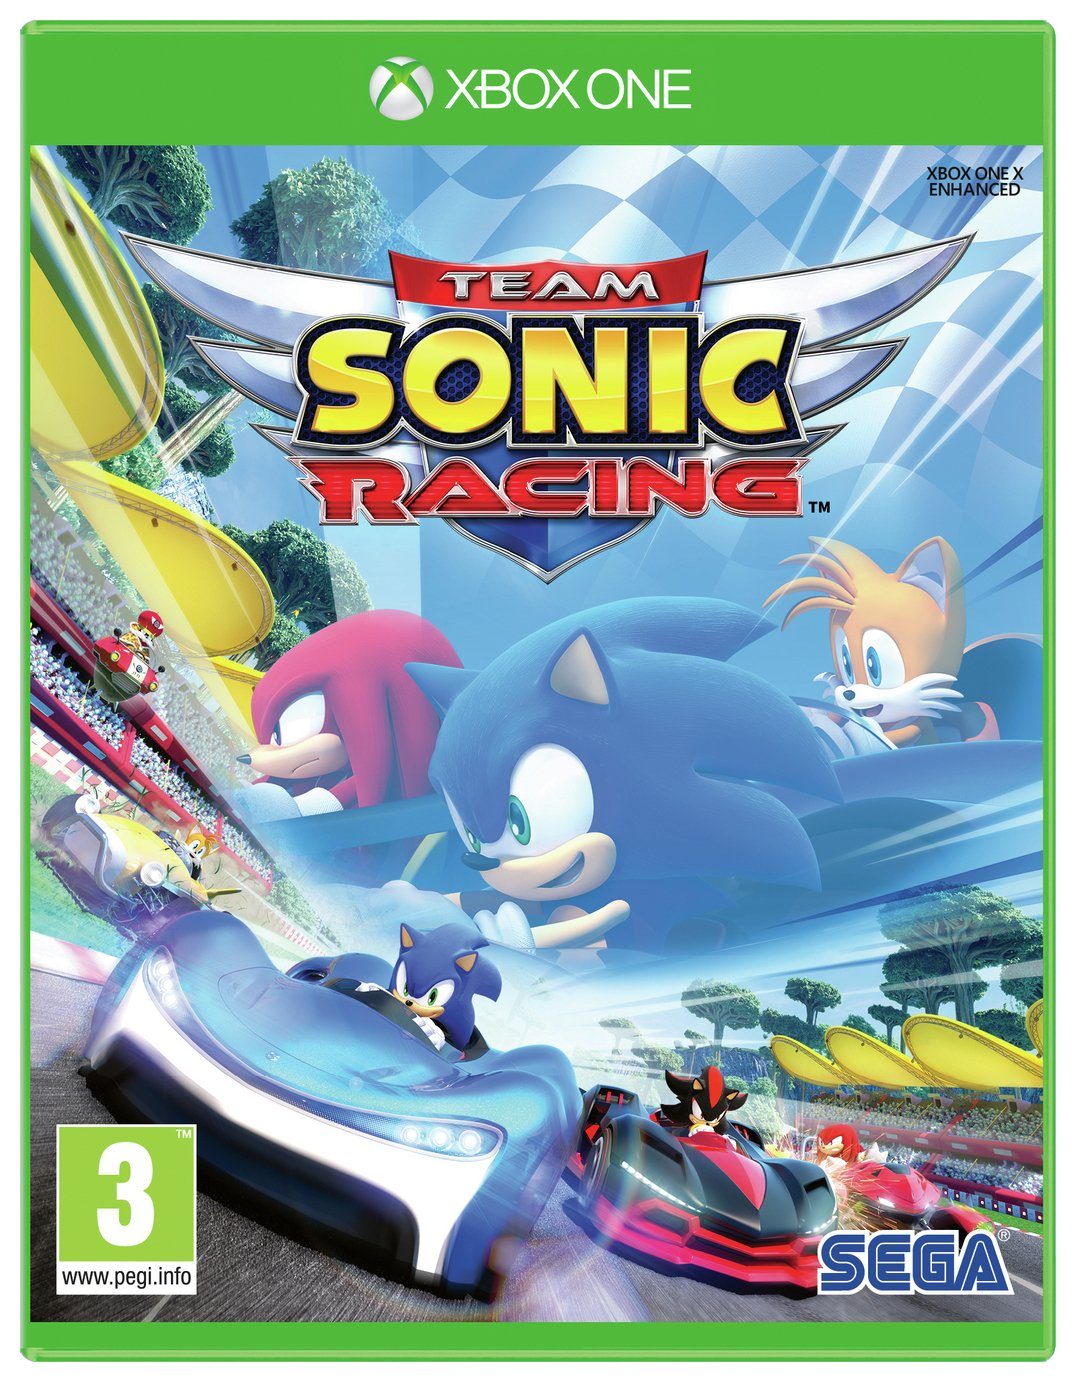 Team Sonic Racing Xbox One Pre-Order Game review